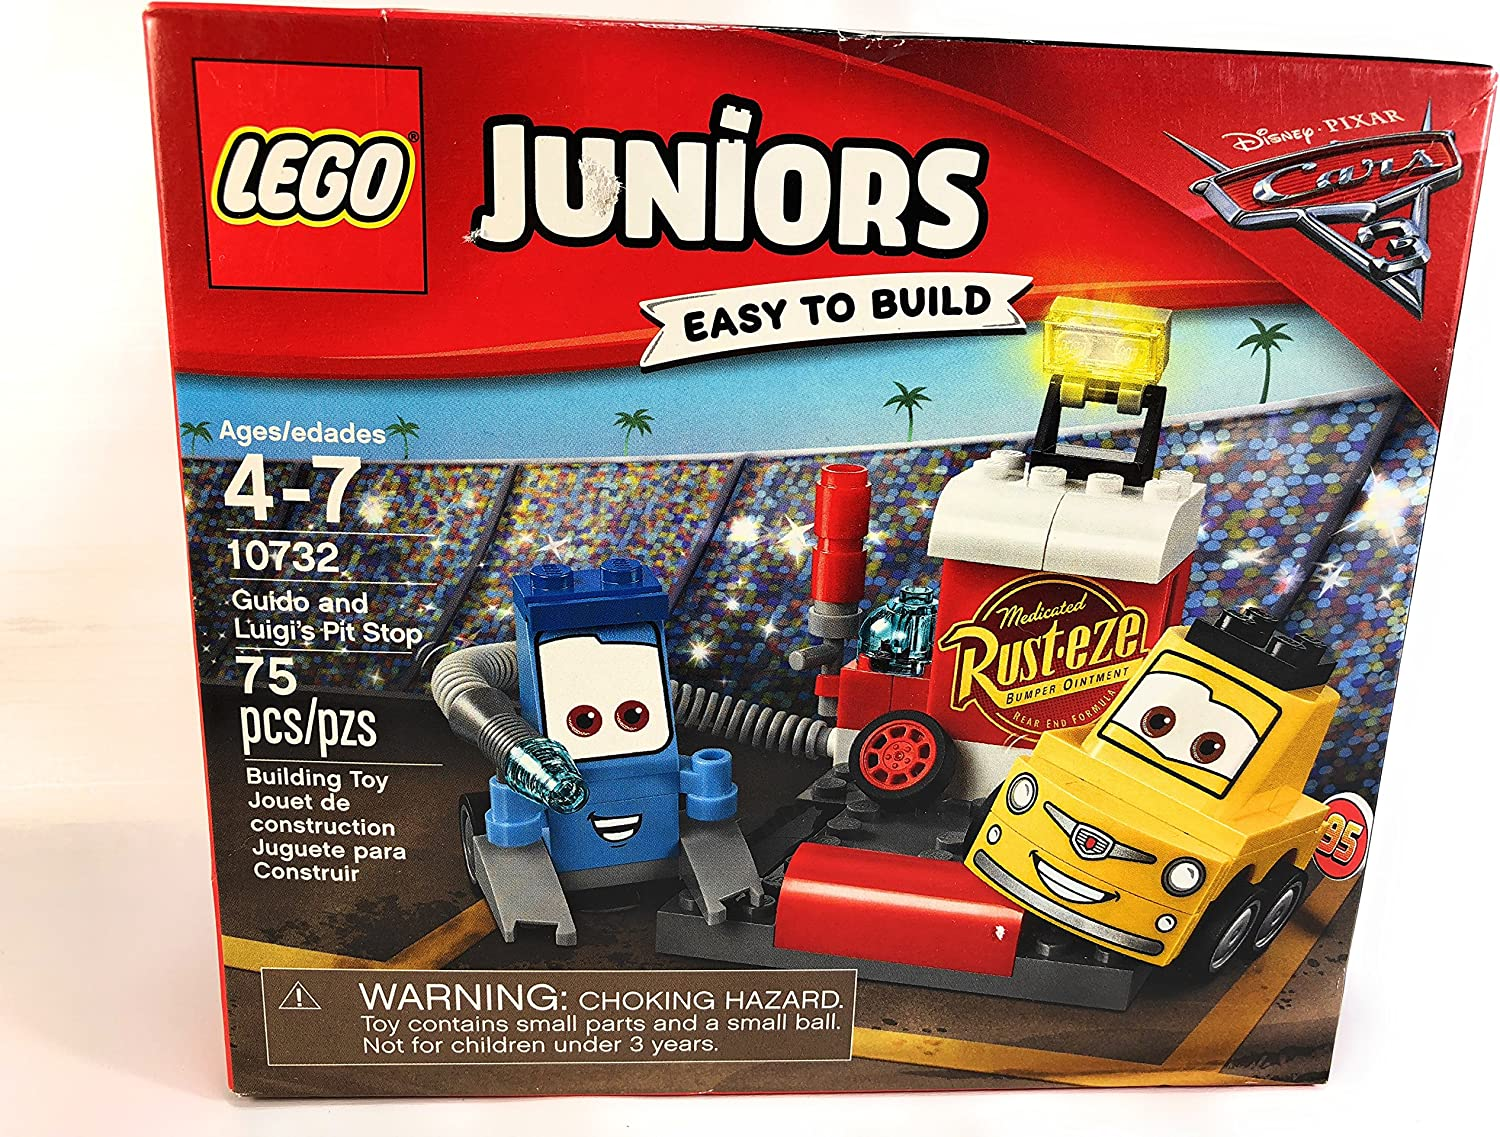 Lego Juniors Guido Luigis Pit Stop Disney Pixar Cars 3 Easy Build Models Kids